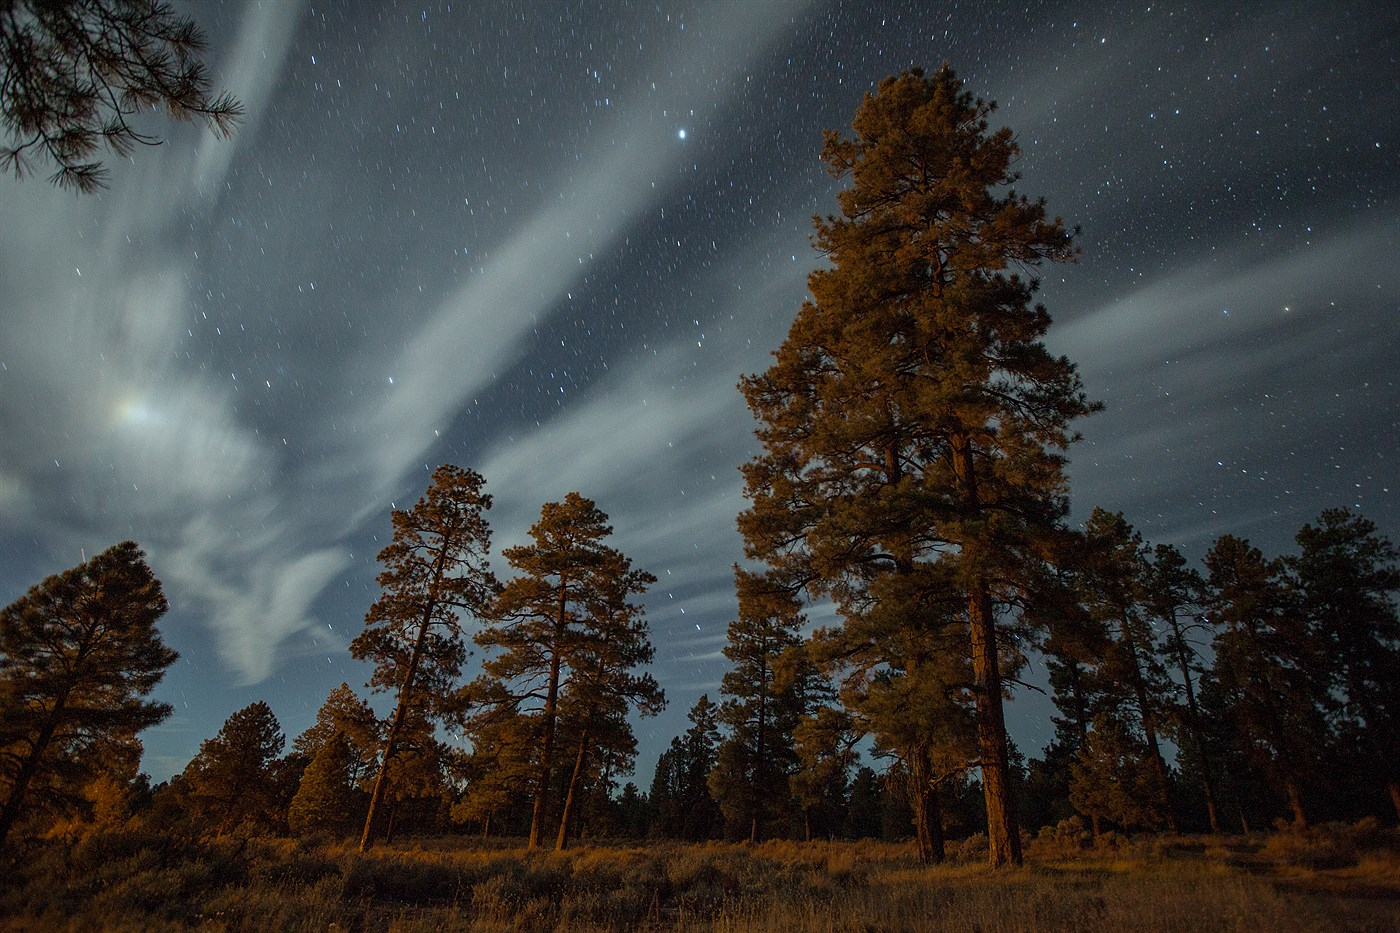 Night Forest near Grand Canyon, photo